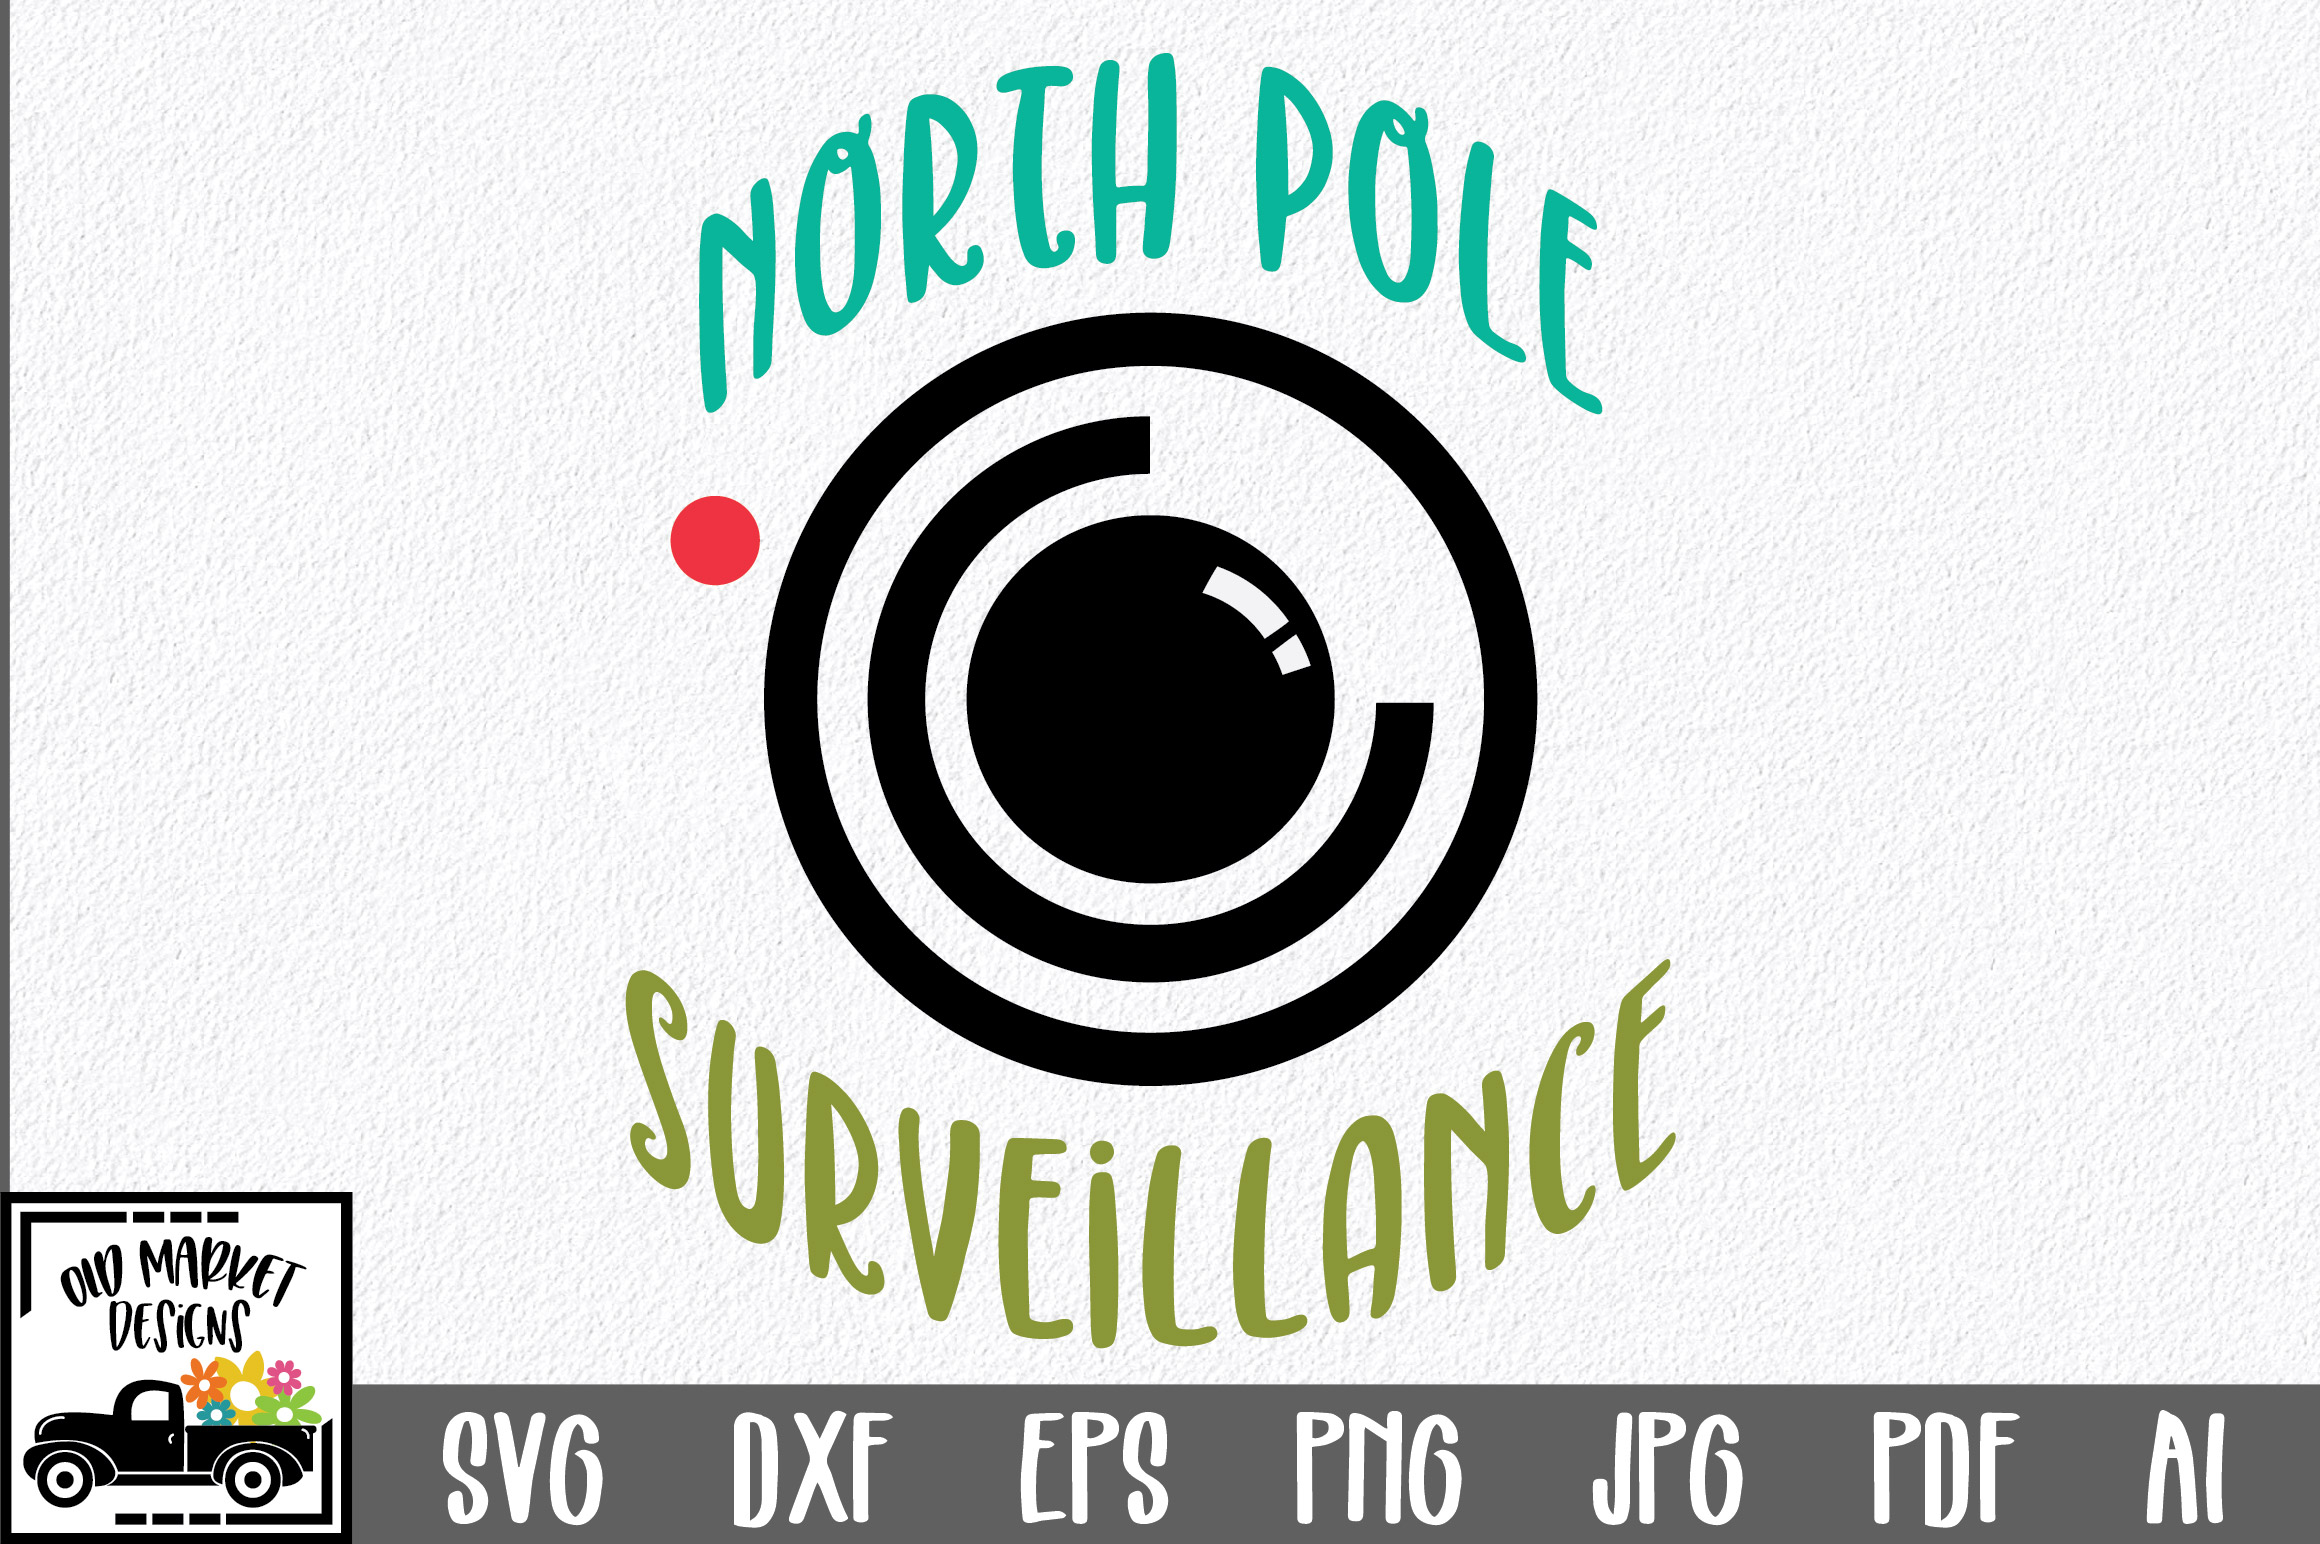 Download Free Christmas North Pole Surveillance Graphic By Oldmarketdesigns for Cricut Explore, Silhouette and other cutting machines.